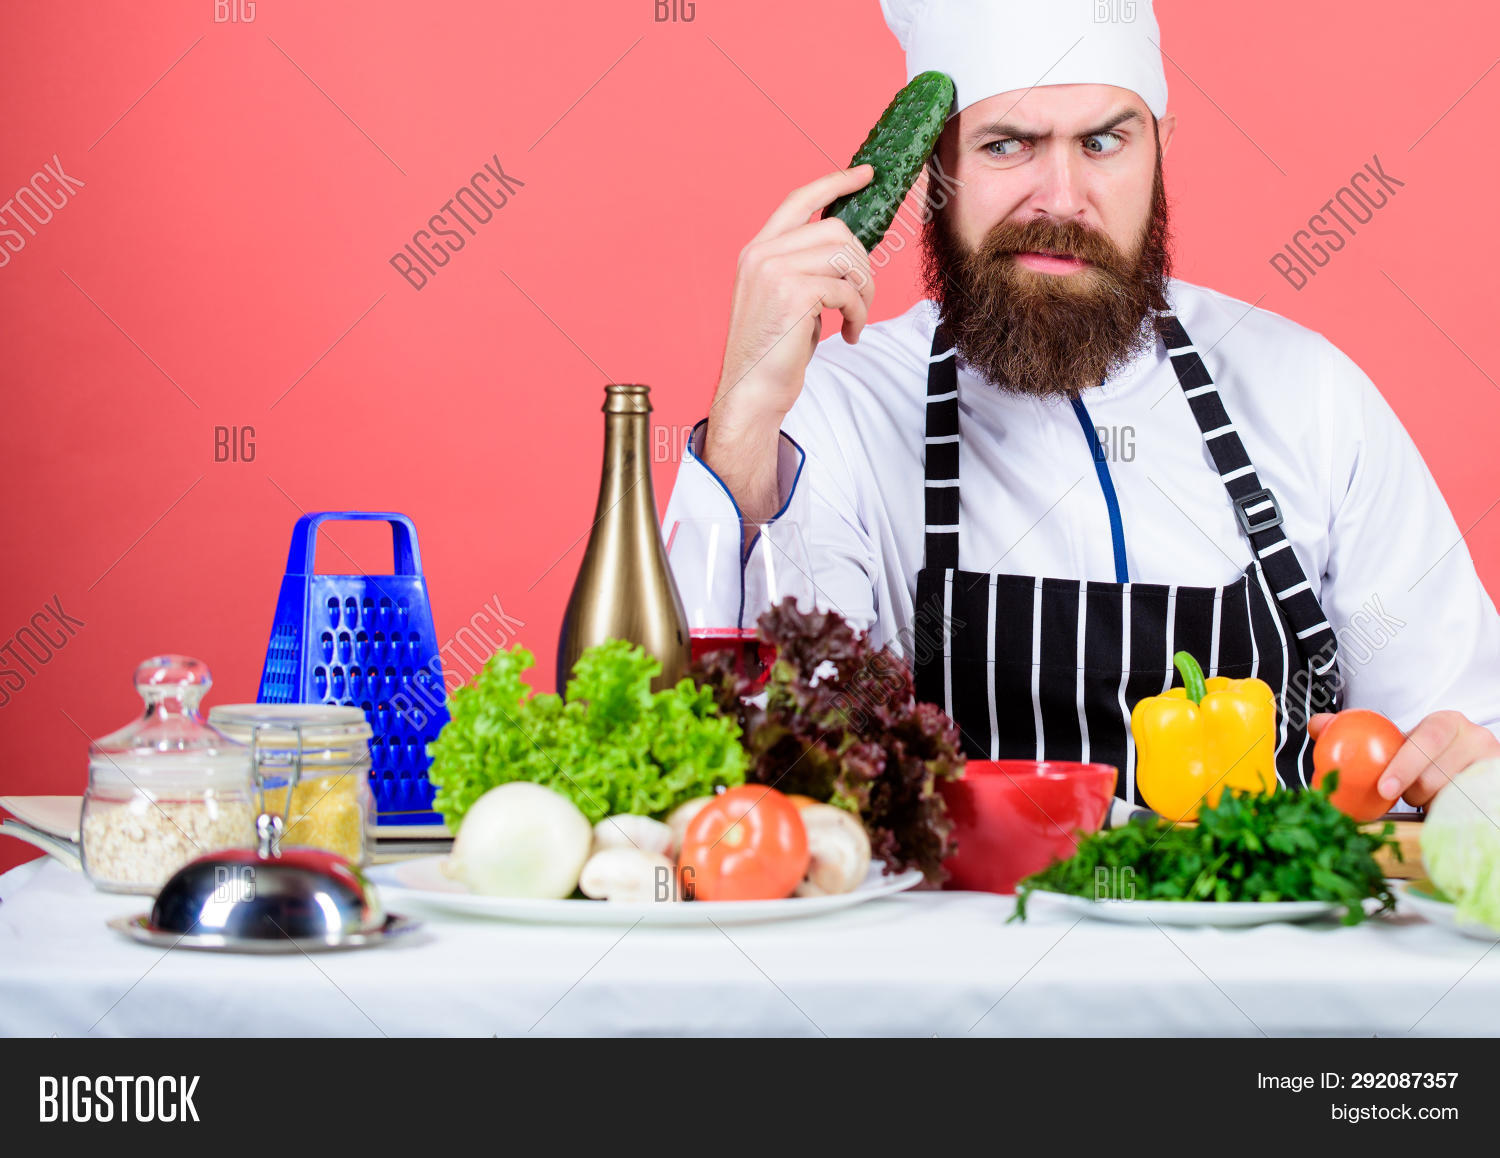 apron,background,buy,cafe,caucasian,chef,chief,choose,concept,cook,cooking,cuisine,culinary,diet,dieting,eat,food,fresh,gourmet,greenery,grocery,hat,health,healthy,hipster,hold,homegrown,idea,lifestyle,man,nutrition,organic,professional,ration,recipe,red,restaurant,store,think,uniform,vegan,vegetable,vegetarian,vitamin